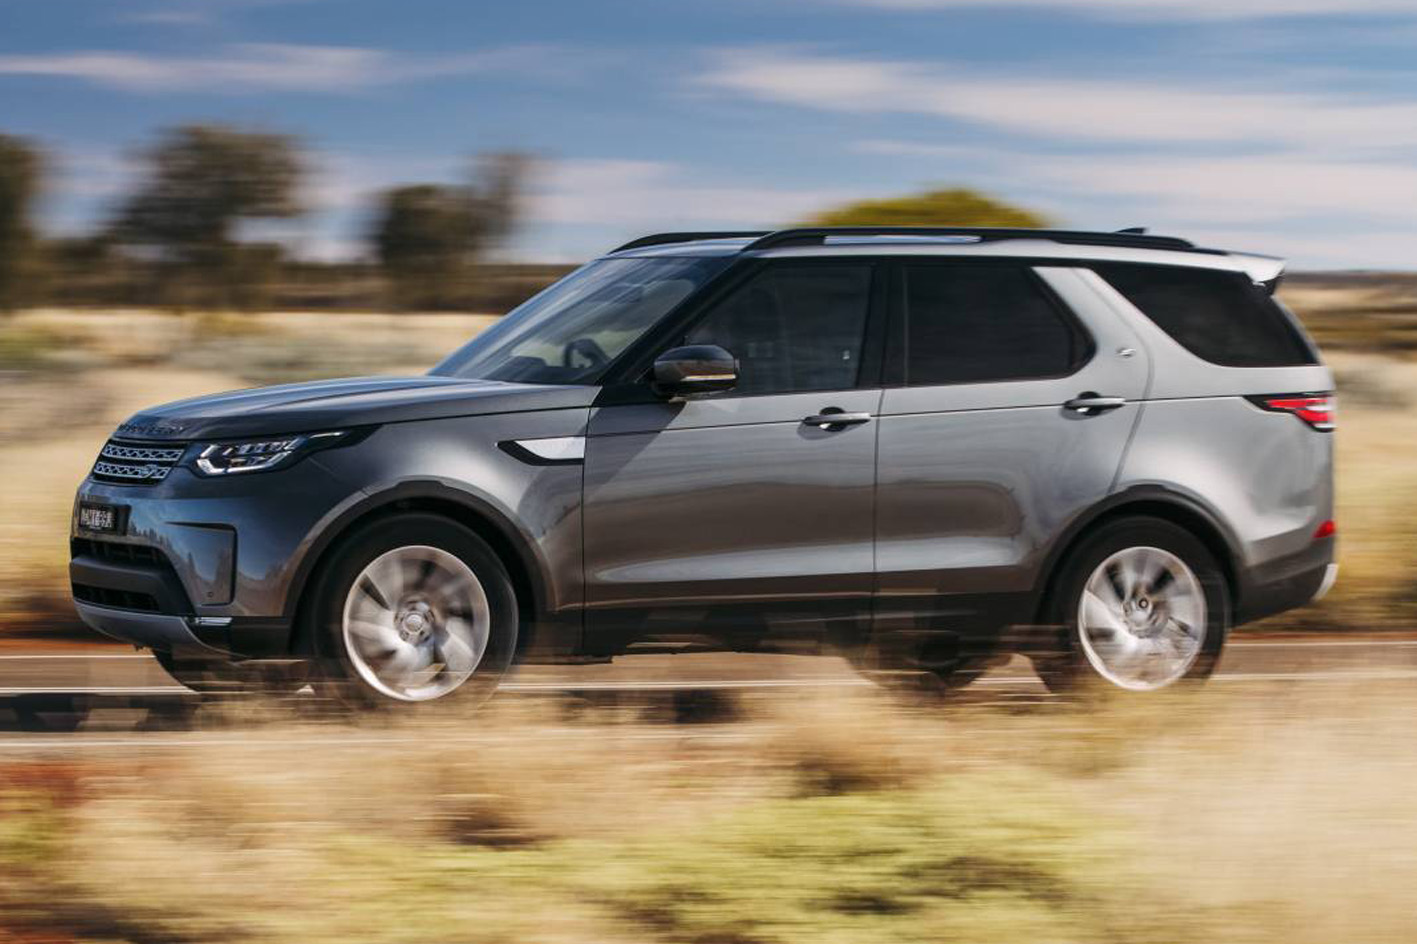 2018-Land-Rover-Discovery-TDV6-HSE-Review6.jpg